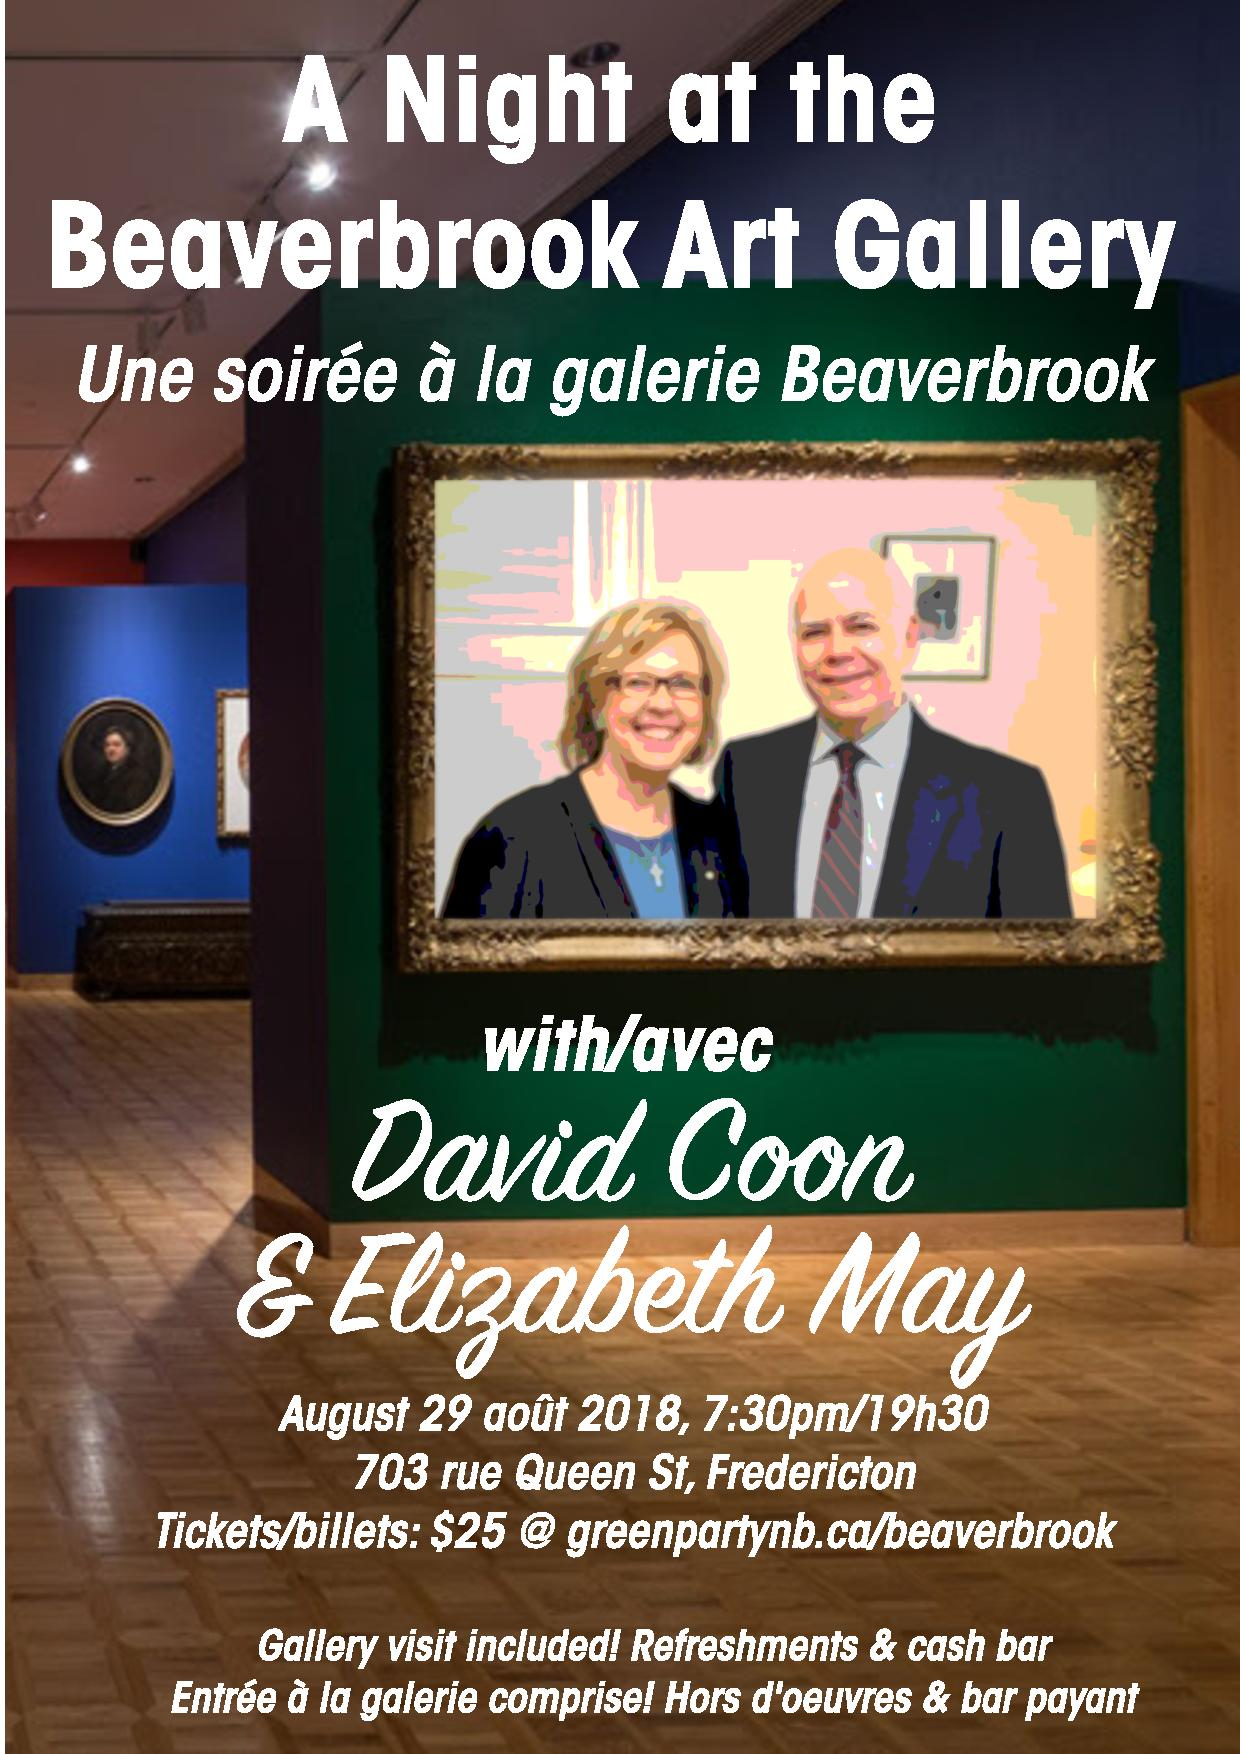 A_night_at_the_Beaverbrook_art_gallery_-_poster-page-001.jpg